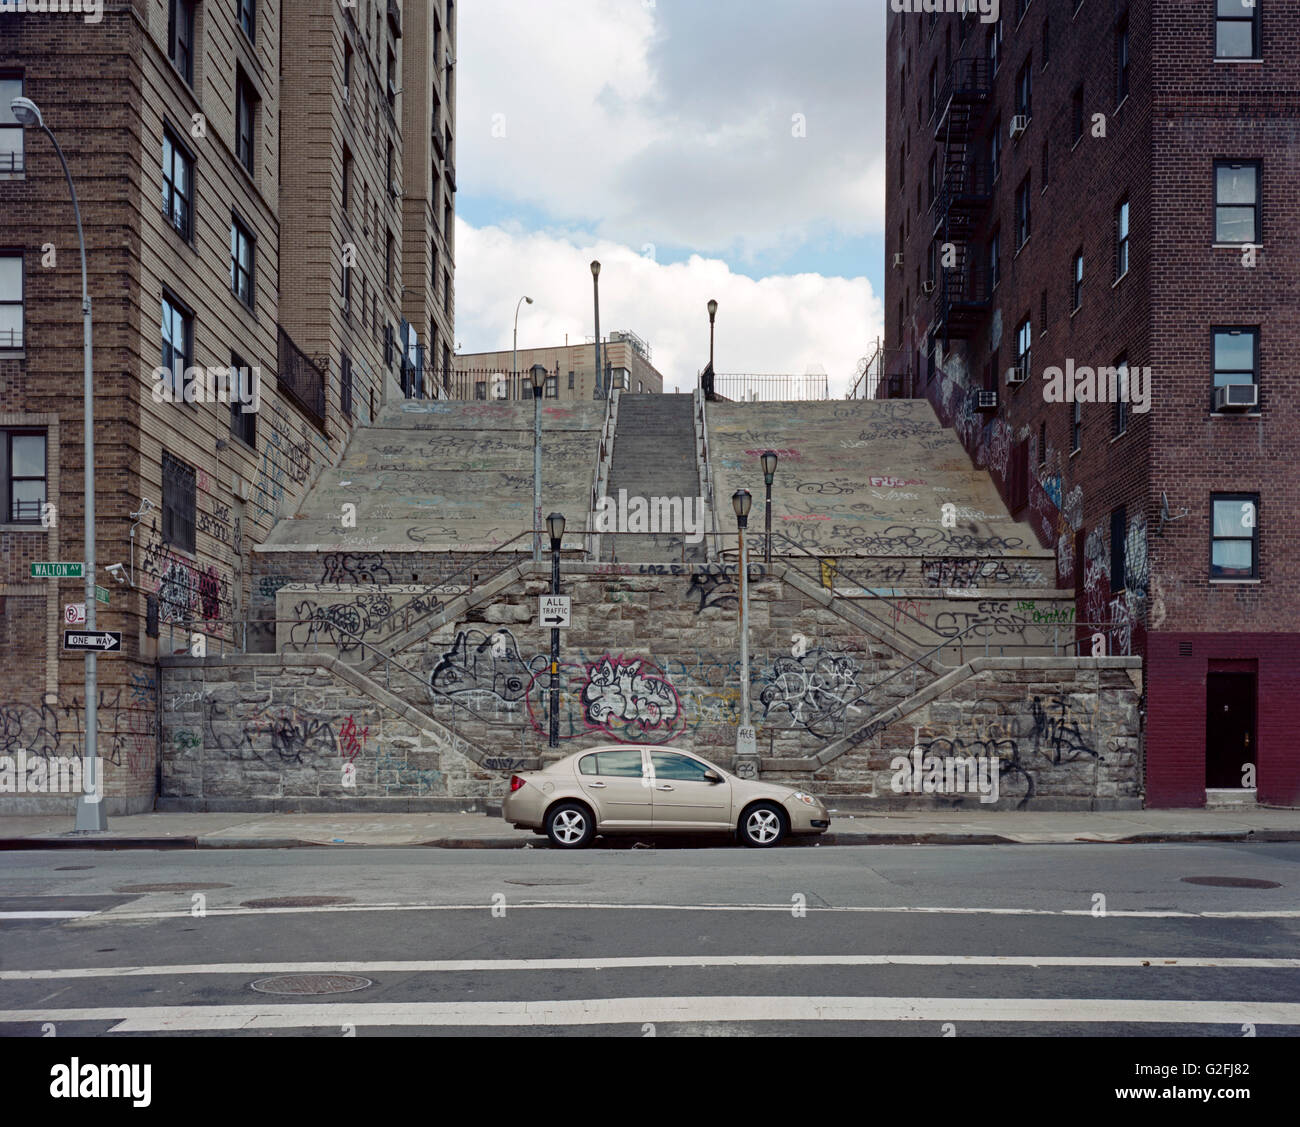 Parked Car at Base of Large Stairs Between Two Buildings, Graffiti, Bronx, New York City, USA - Stock Image